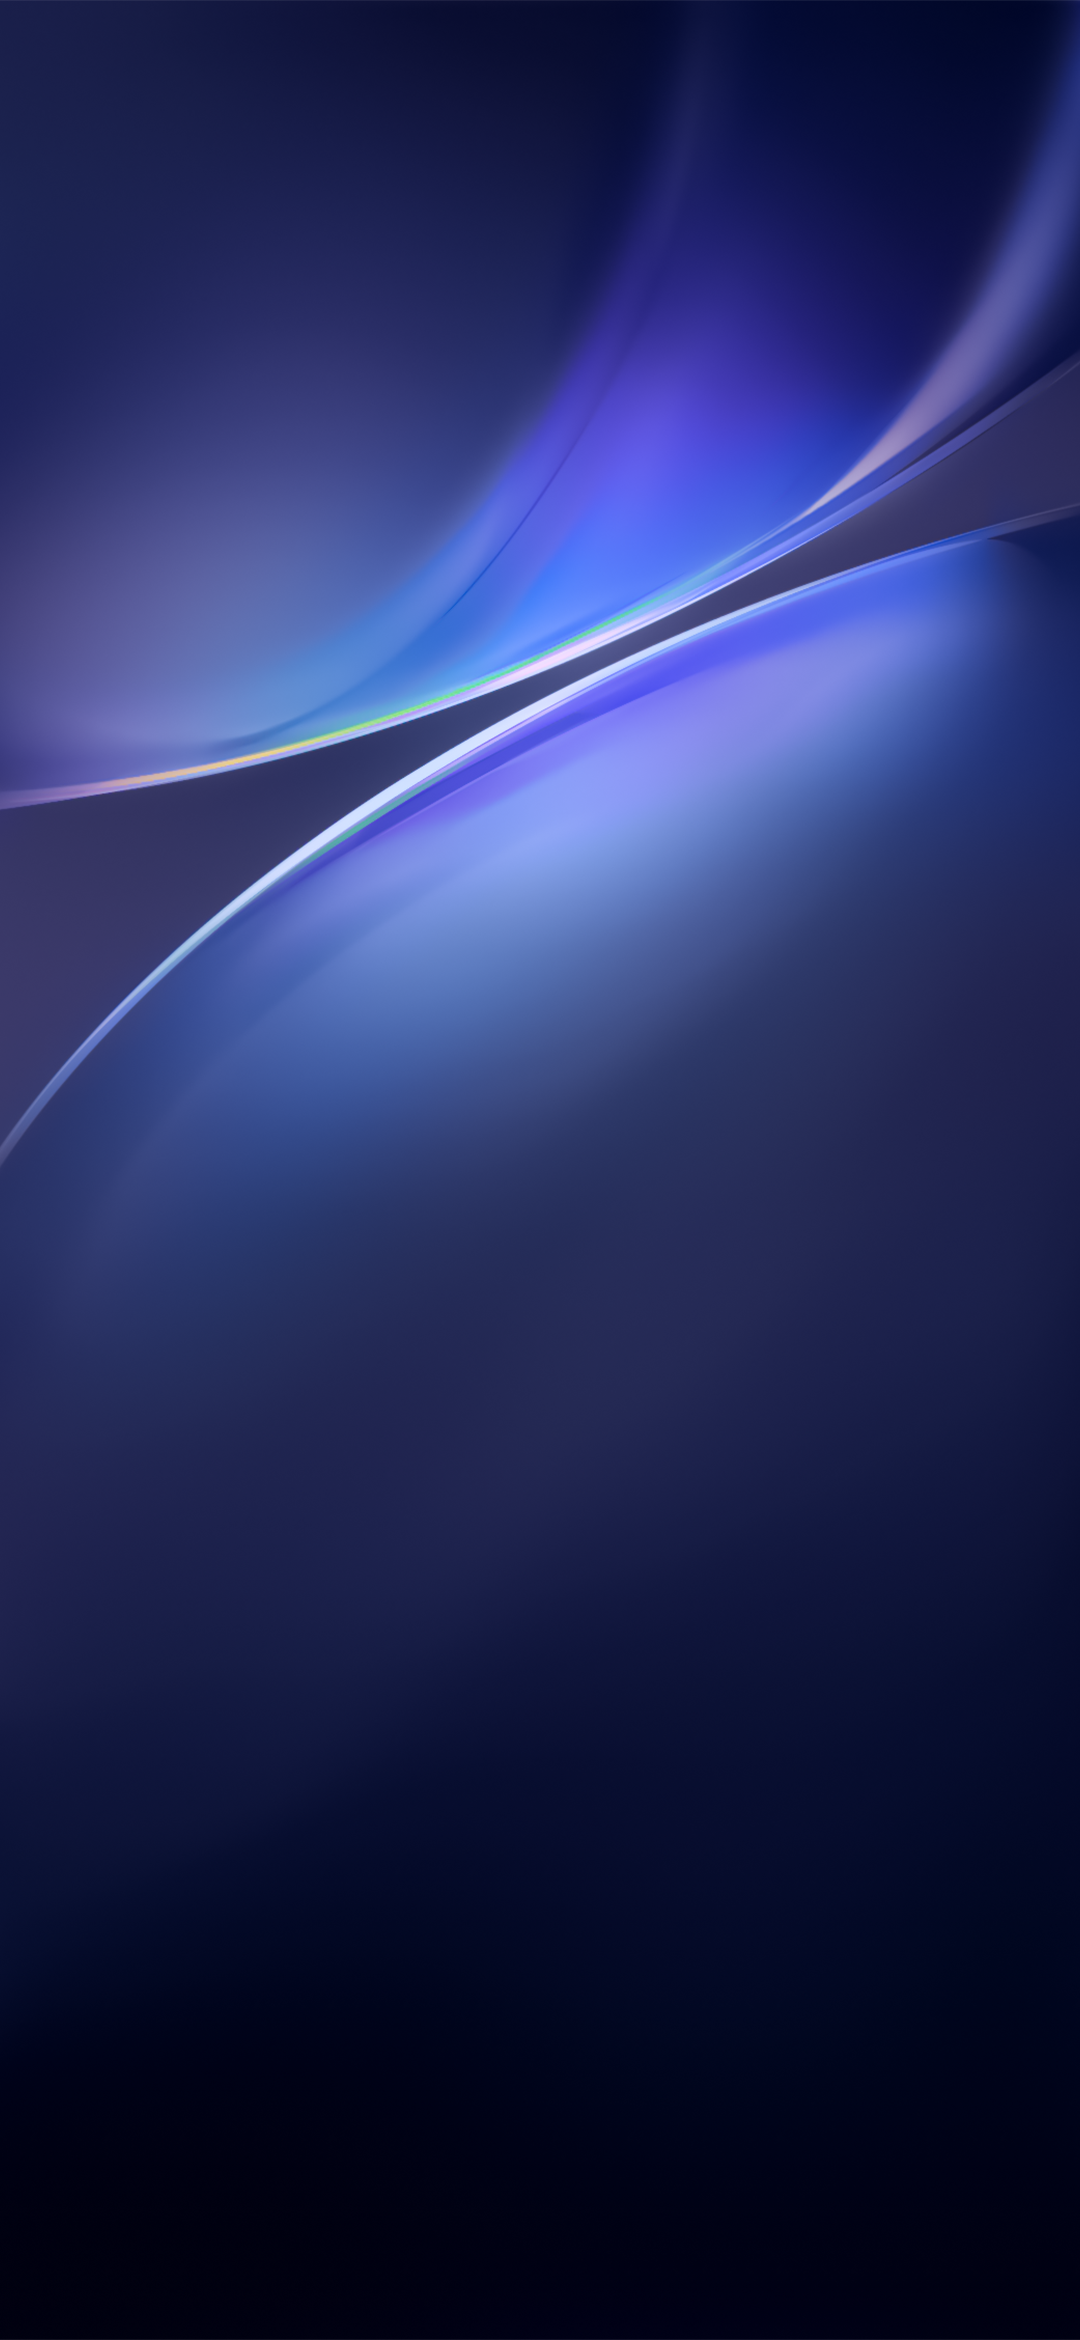 Vivo Y19 Wallpaper Ytechb Exclusive In 2020 Samsung Wallpaper Samsung Galaxy Wallpaper Backgrounds Phone Wallpapers